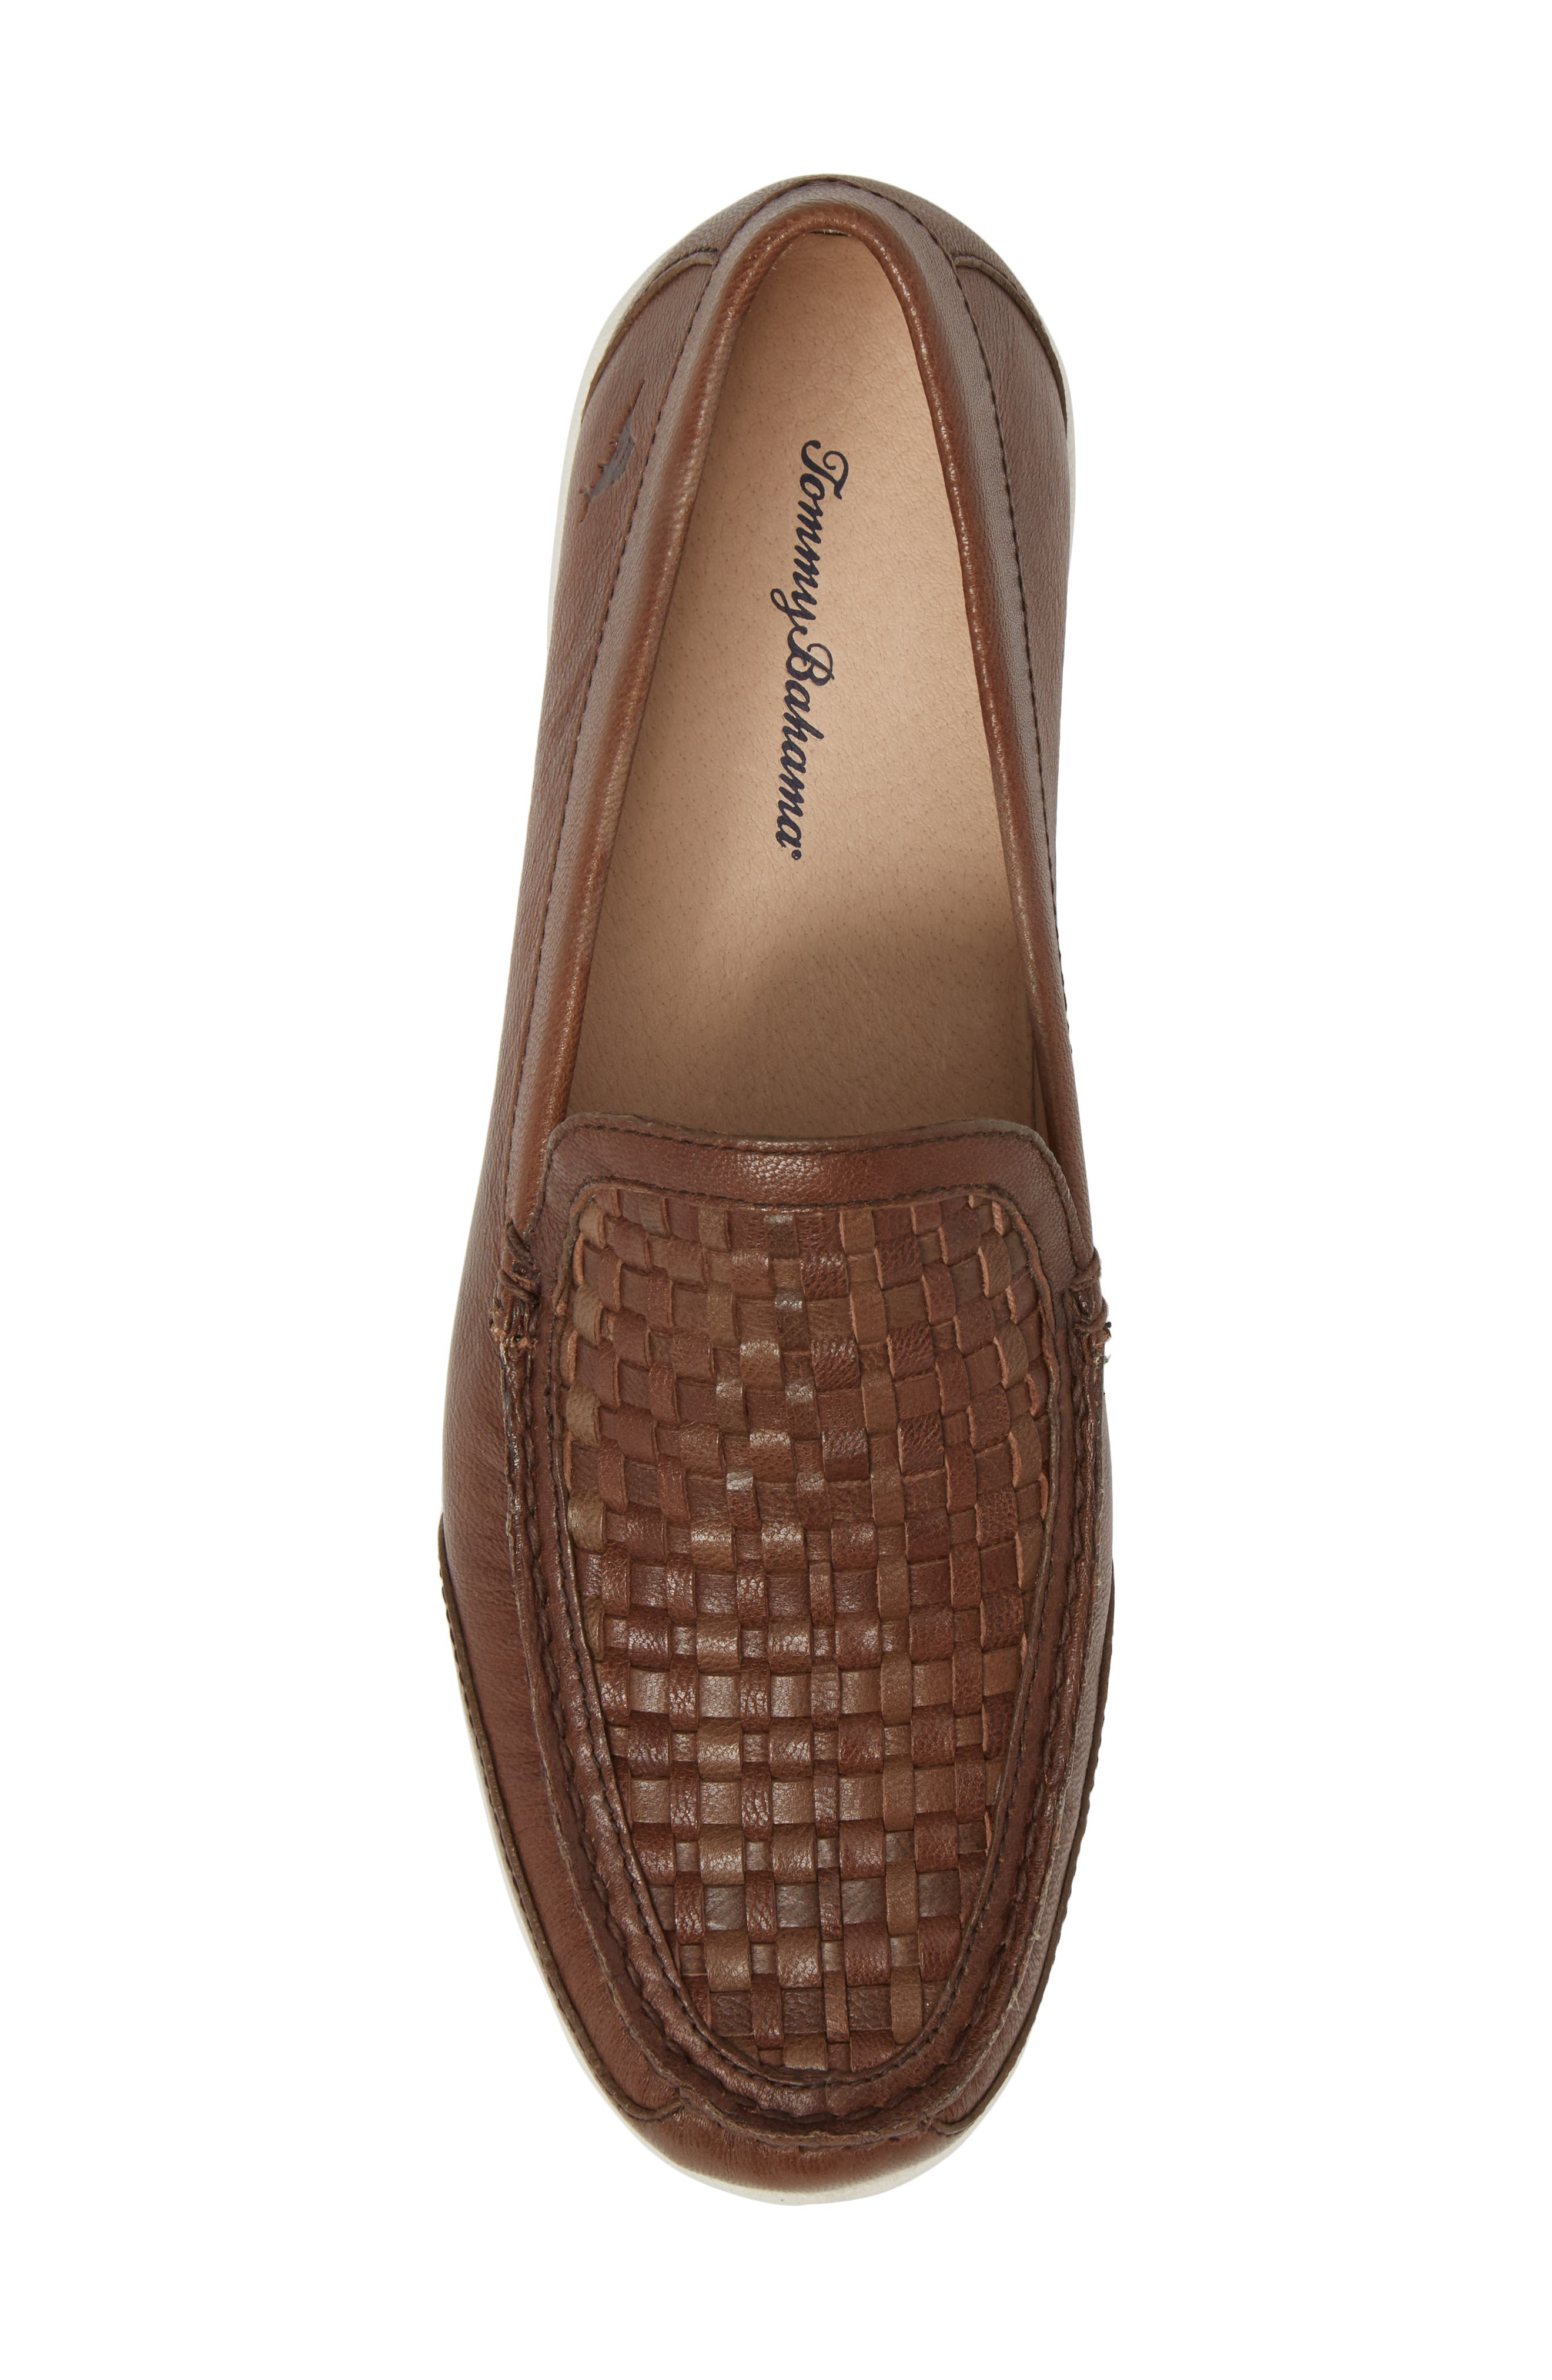 Taormina Woven Loafer,                             Alternate thumbnail 5, color,                             Dark Brown Leather